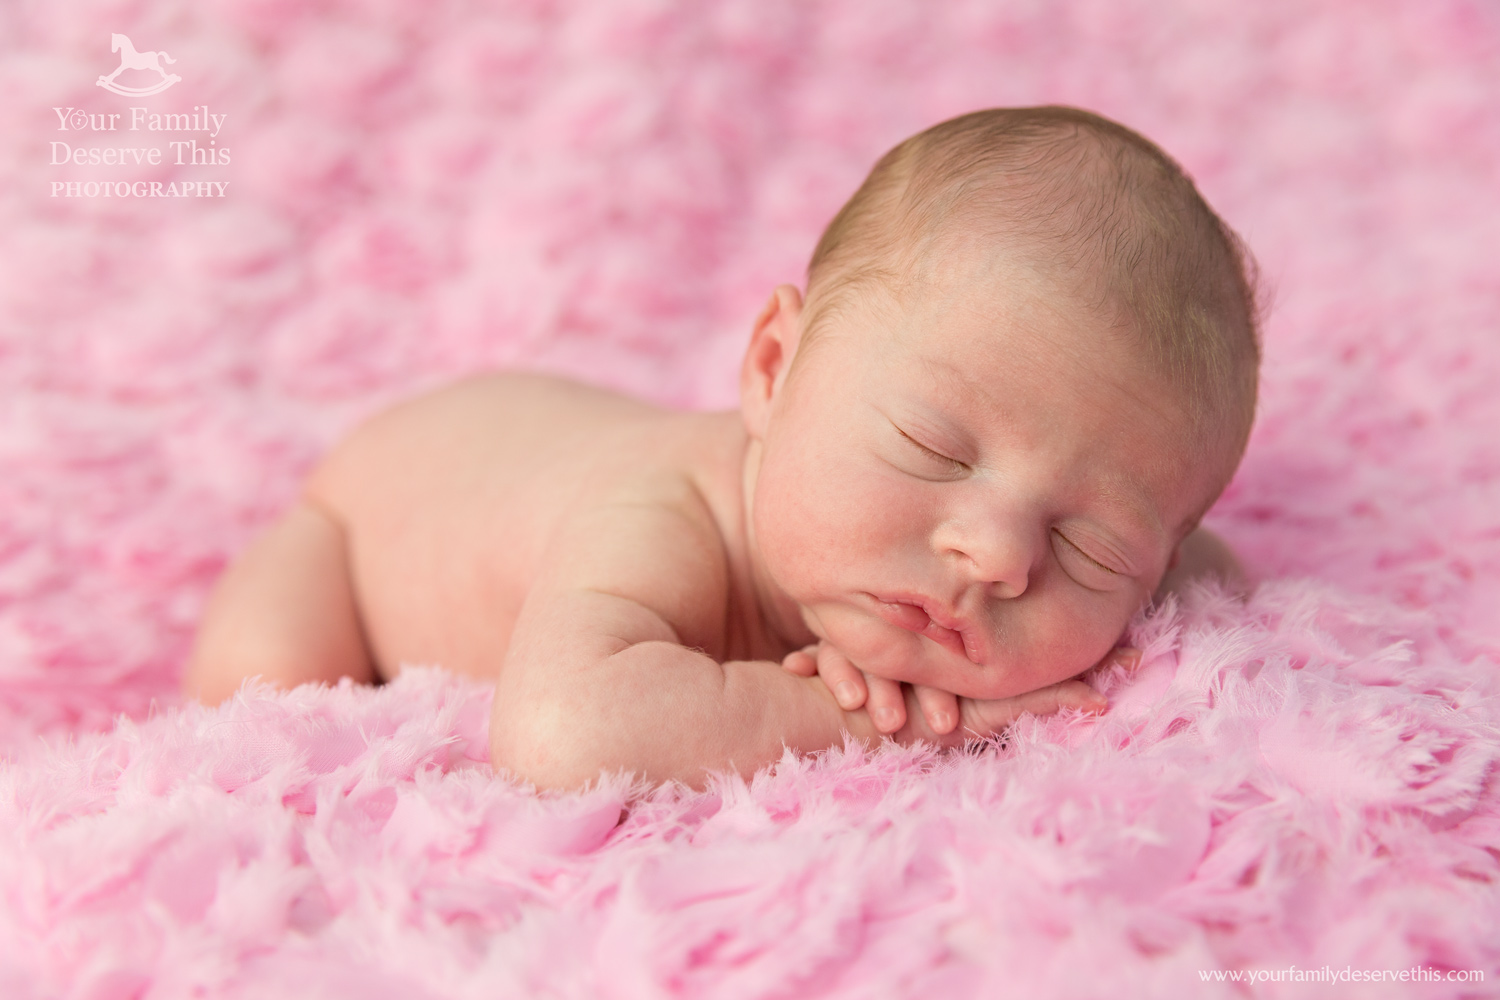 This gorgeous newborn image is one of our favourites... book your photoshoot at  www.yourfamilydeservethis.com